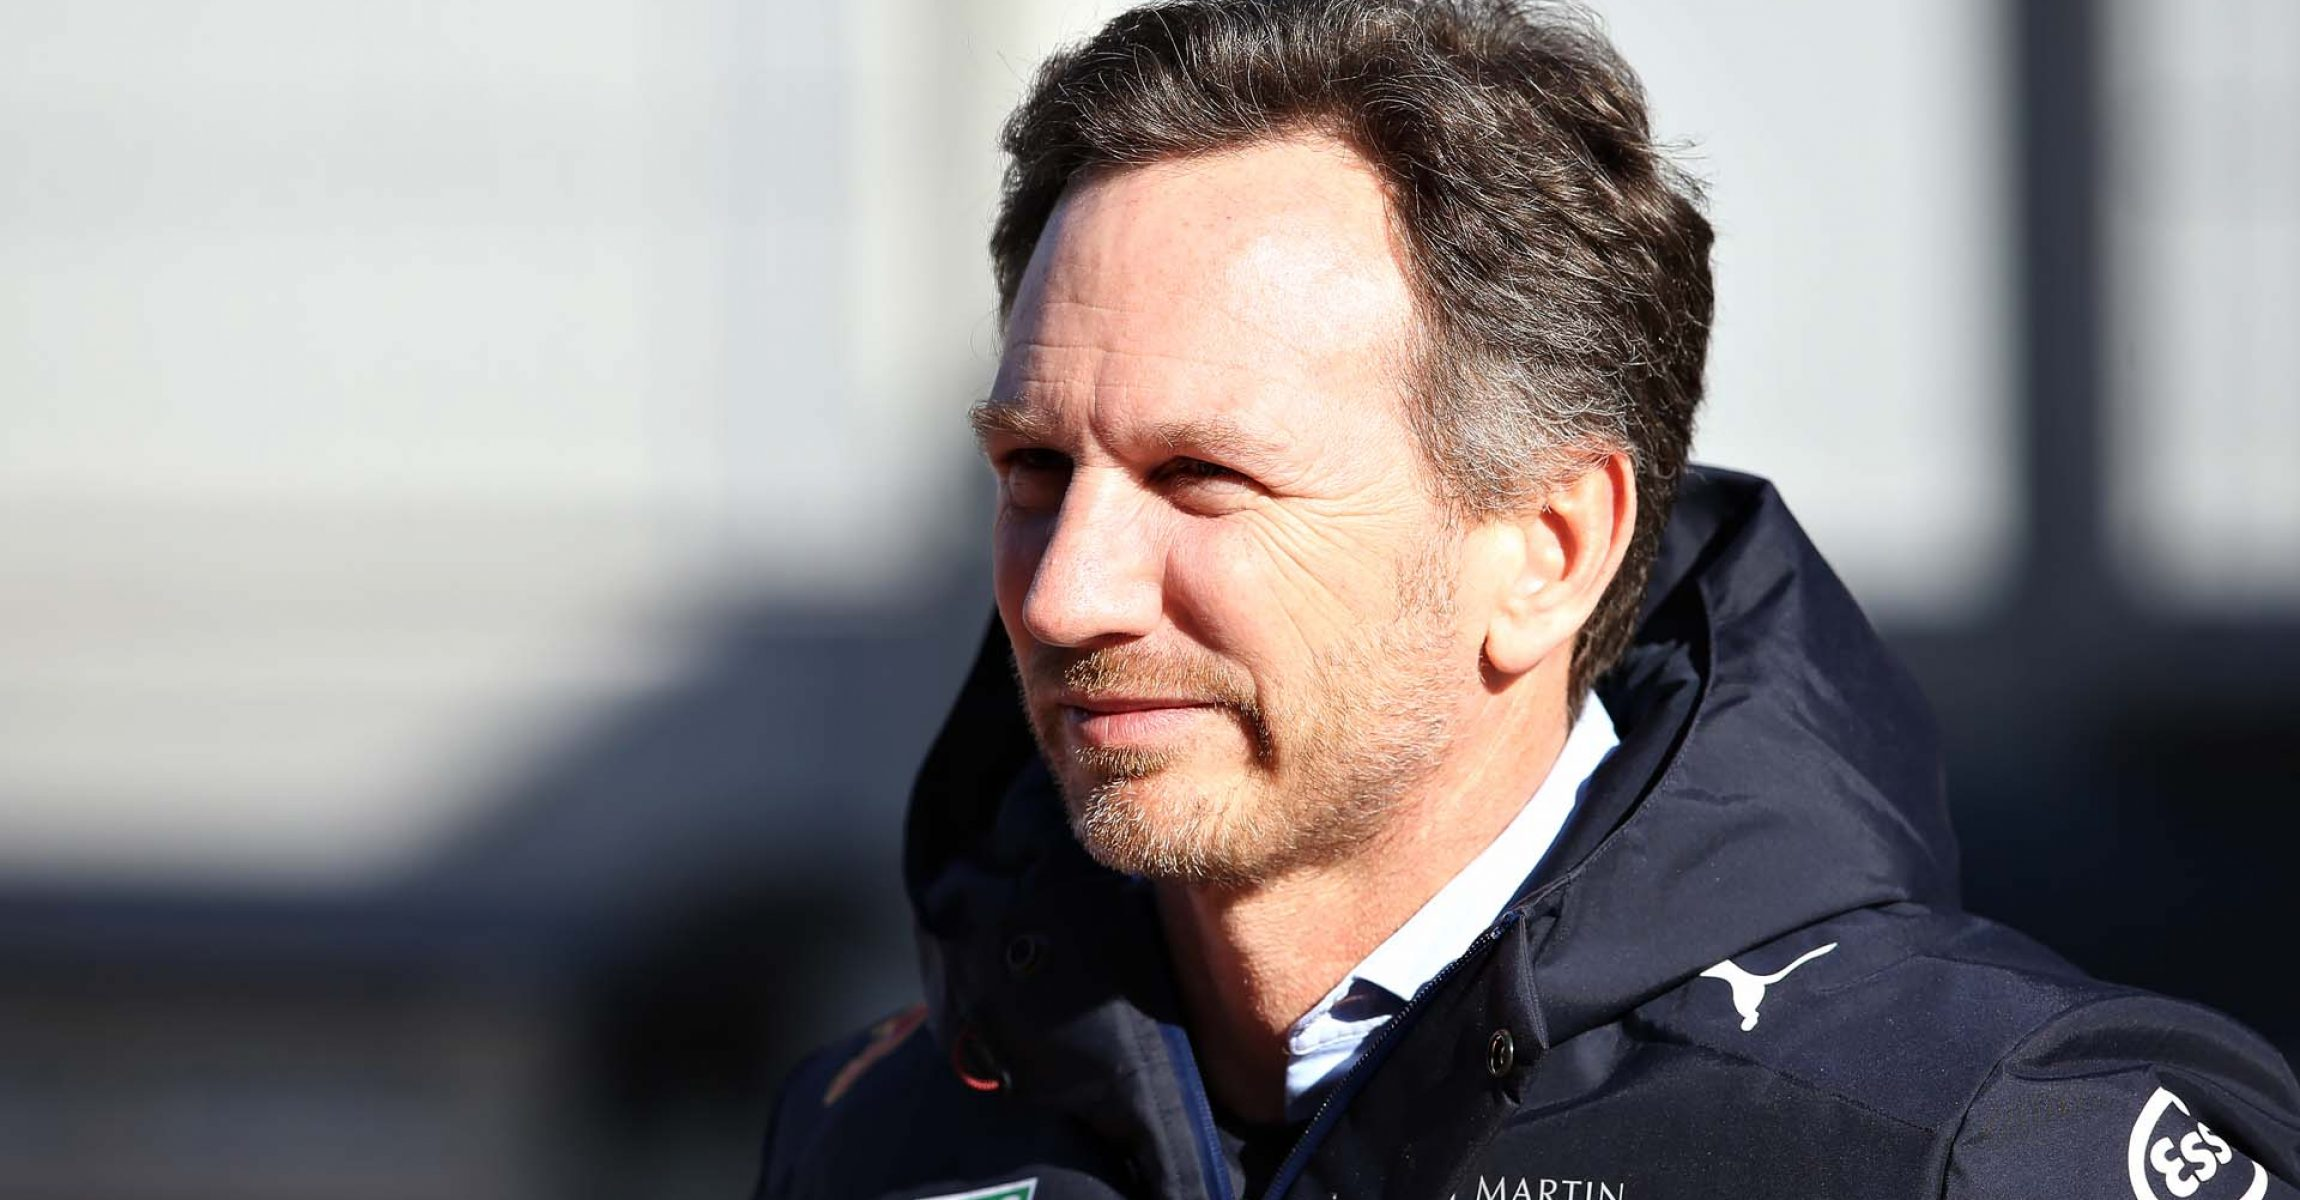 BARCELONA, SPAIN - FEBRUARY 27: Red Bull Racing Team Principal Christian Horner looks on in the Pitlane during Day Two of F1 Winter Testing at Circuit de Barcelona-Catalunya on February 27, 2020 in Barcelona, Spain. (Photo by Charles Coates/Getty Images) // Getty Images / Red Bull Content Pool // AP-2386SA8FN2111 // Usage for editorial use only //